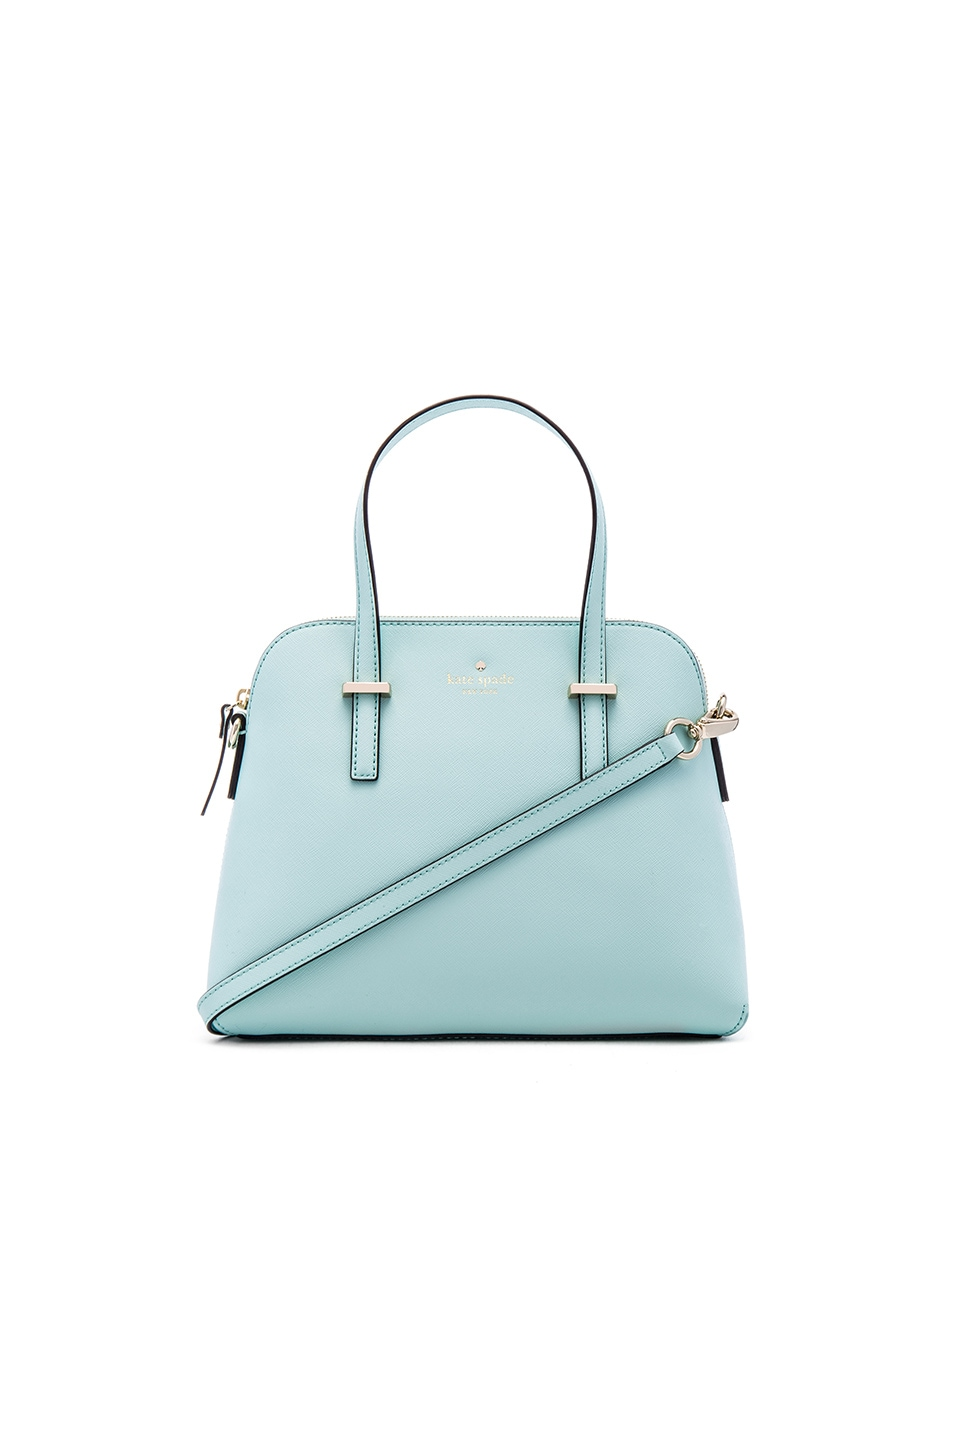 kate spade new york Maise Tote in Grace Blue